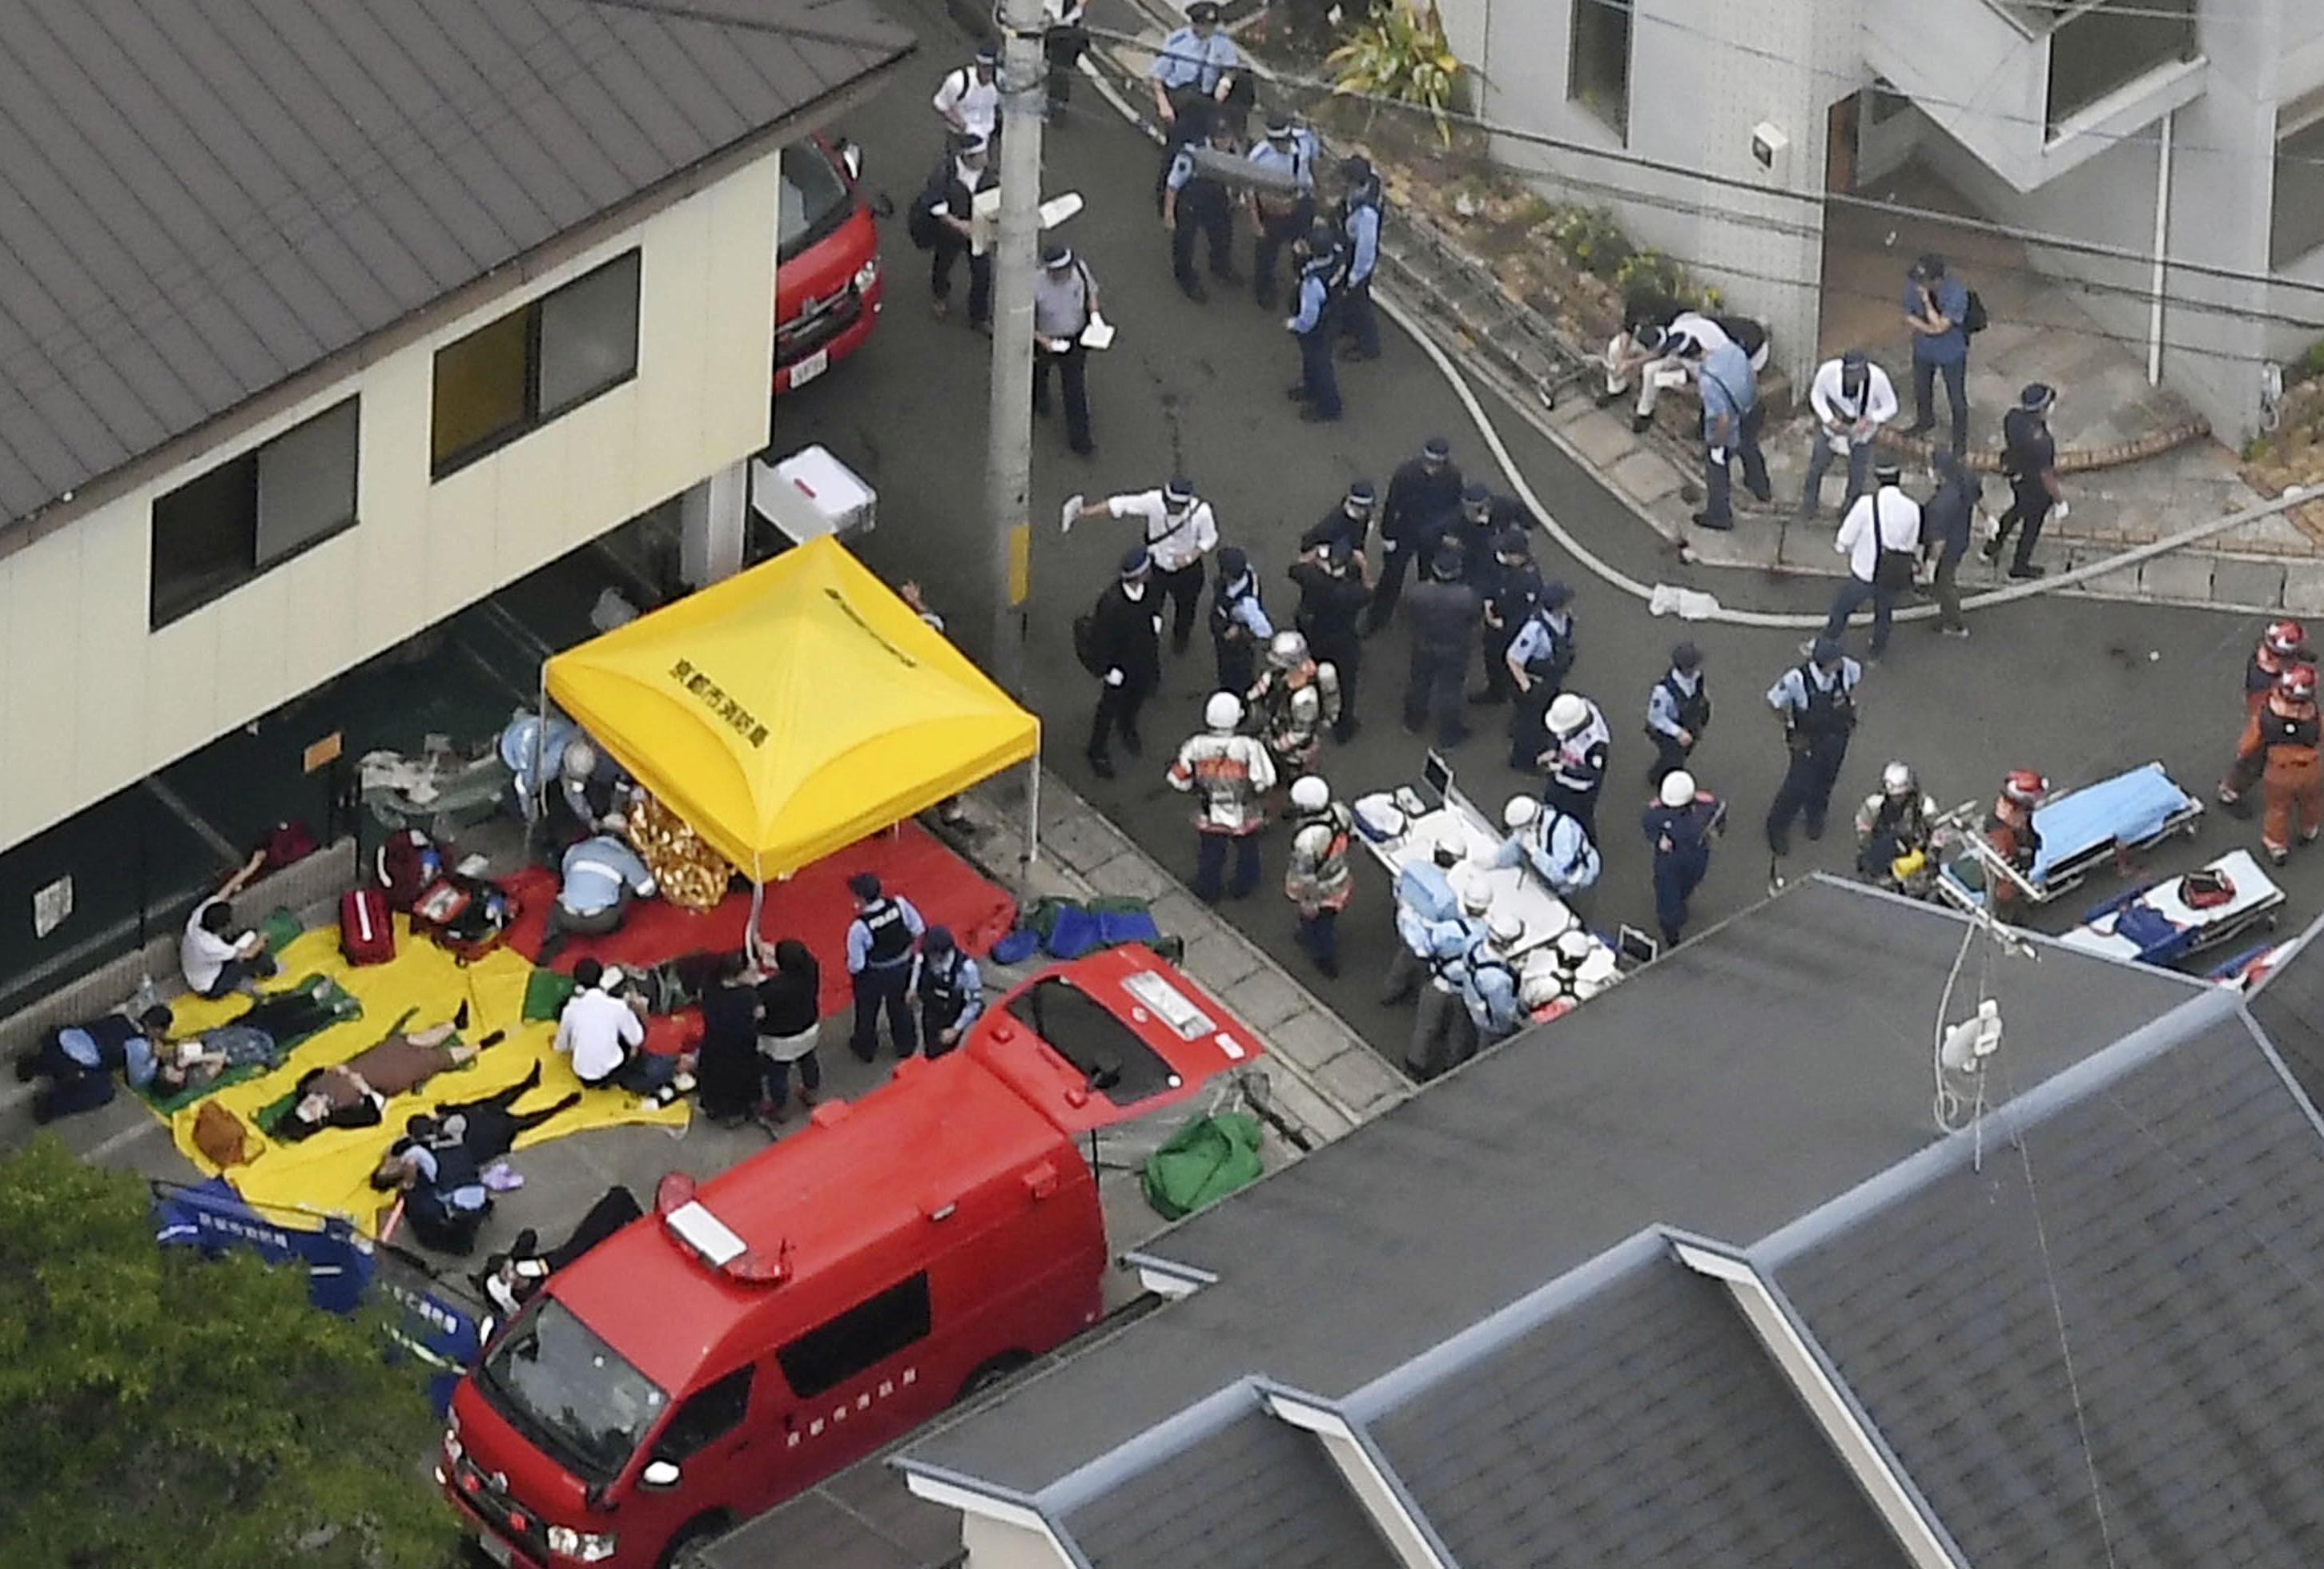 'Appalling' arson attack on Japanese animation studio kills at least 33